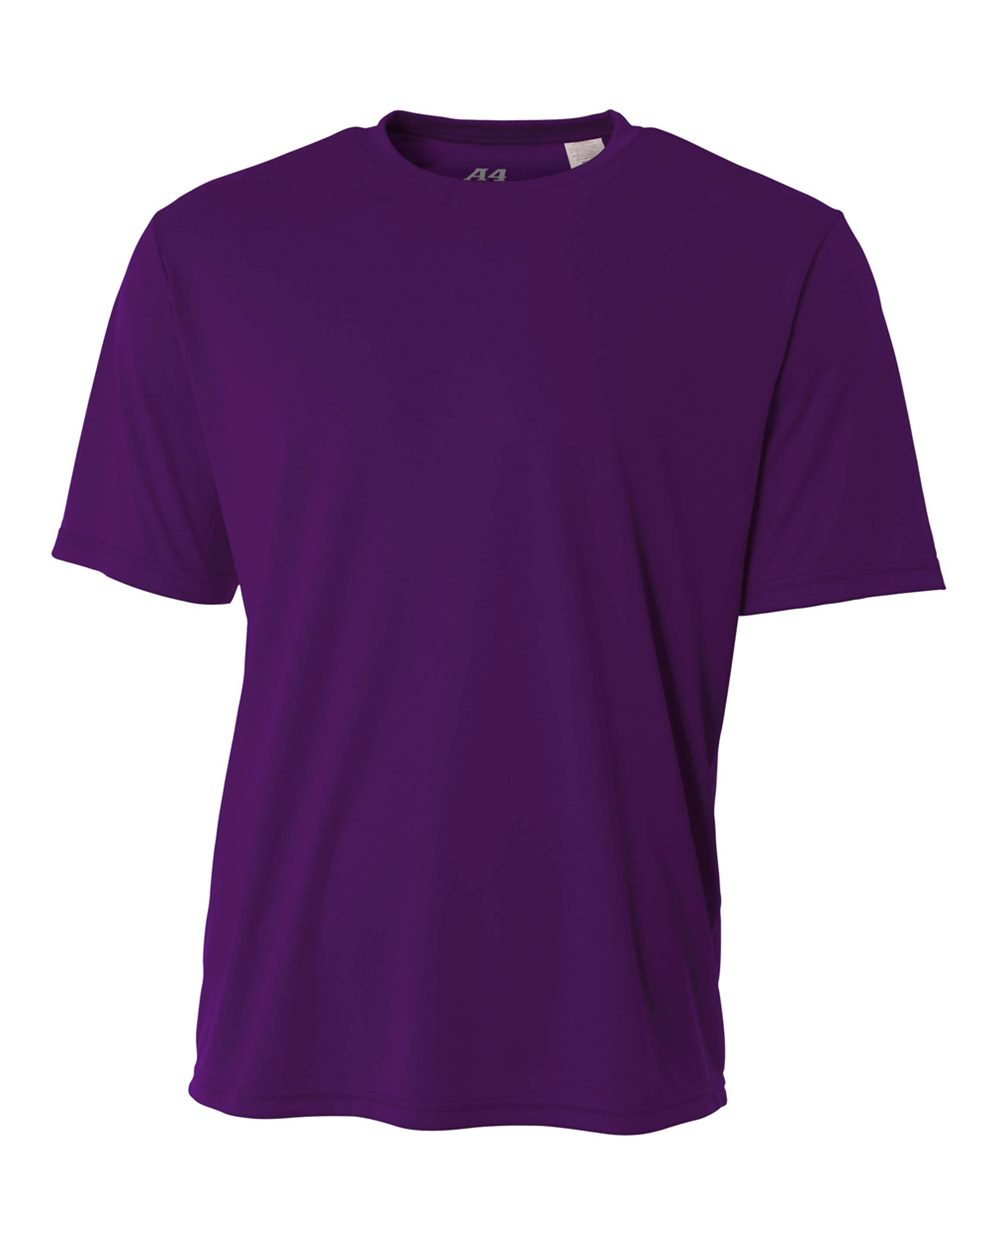 mw-polo-purple.jpg